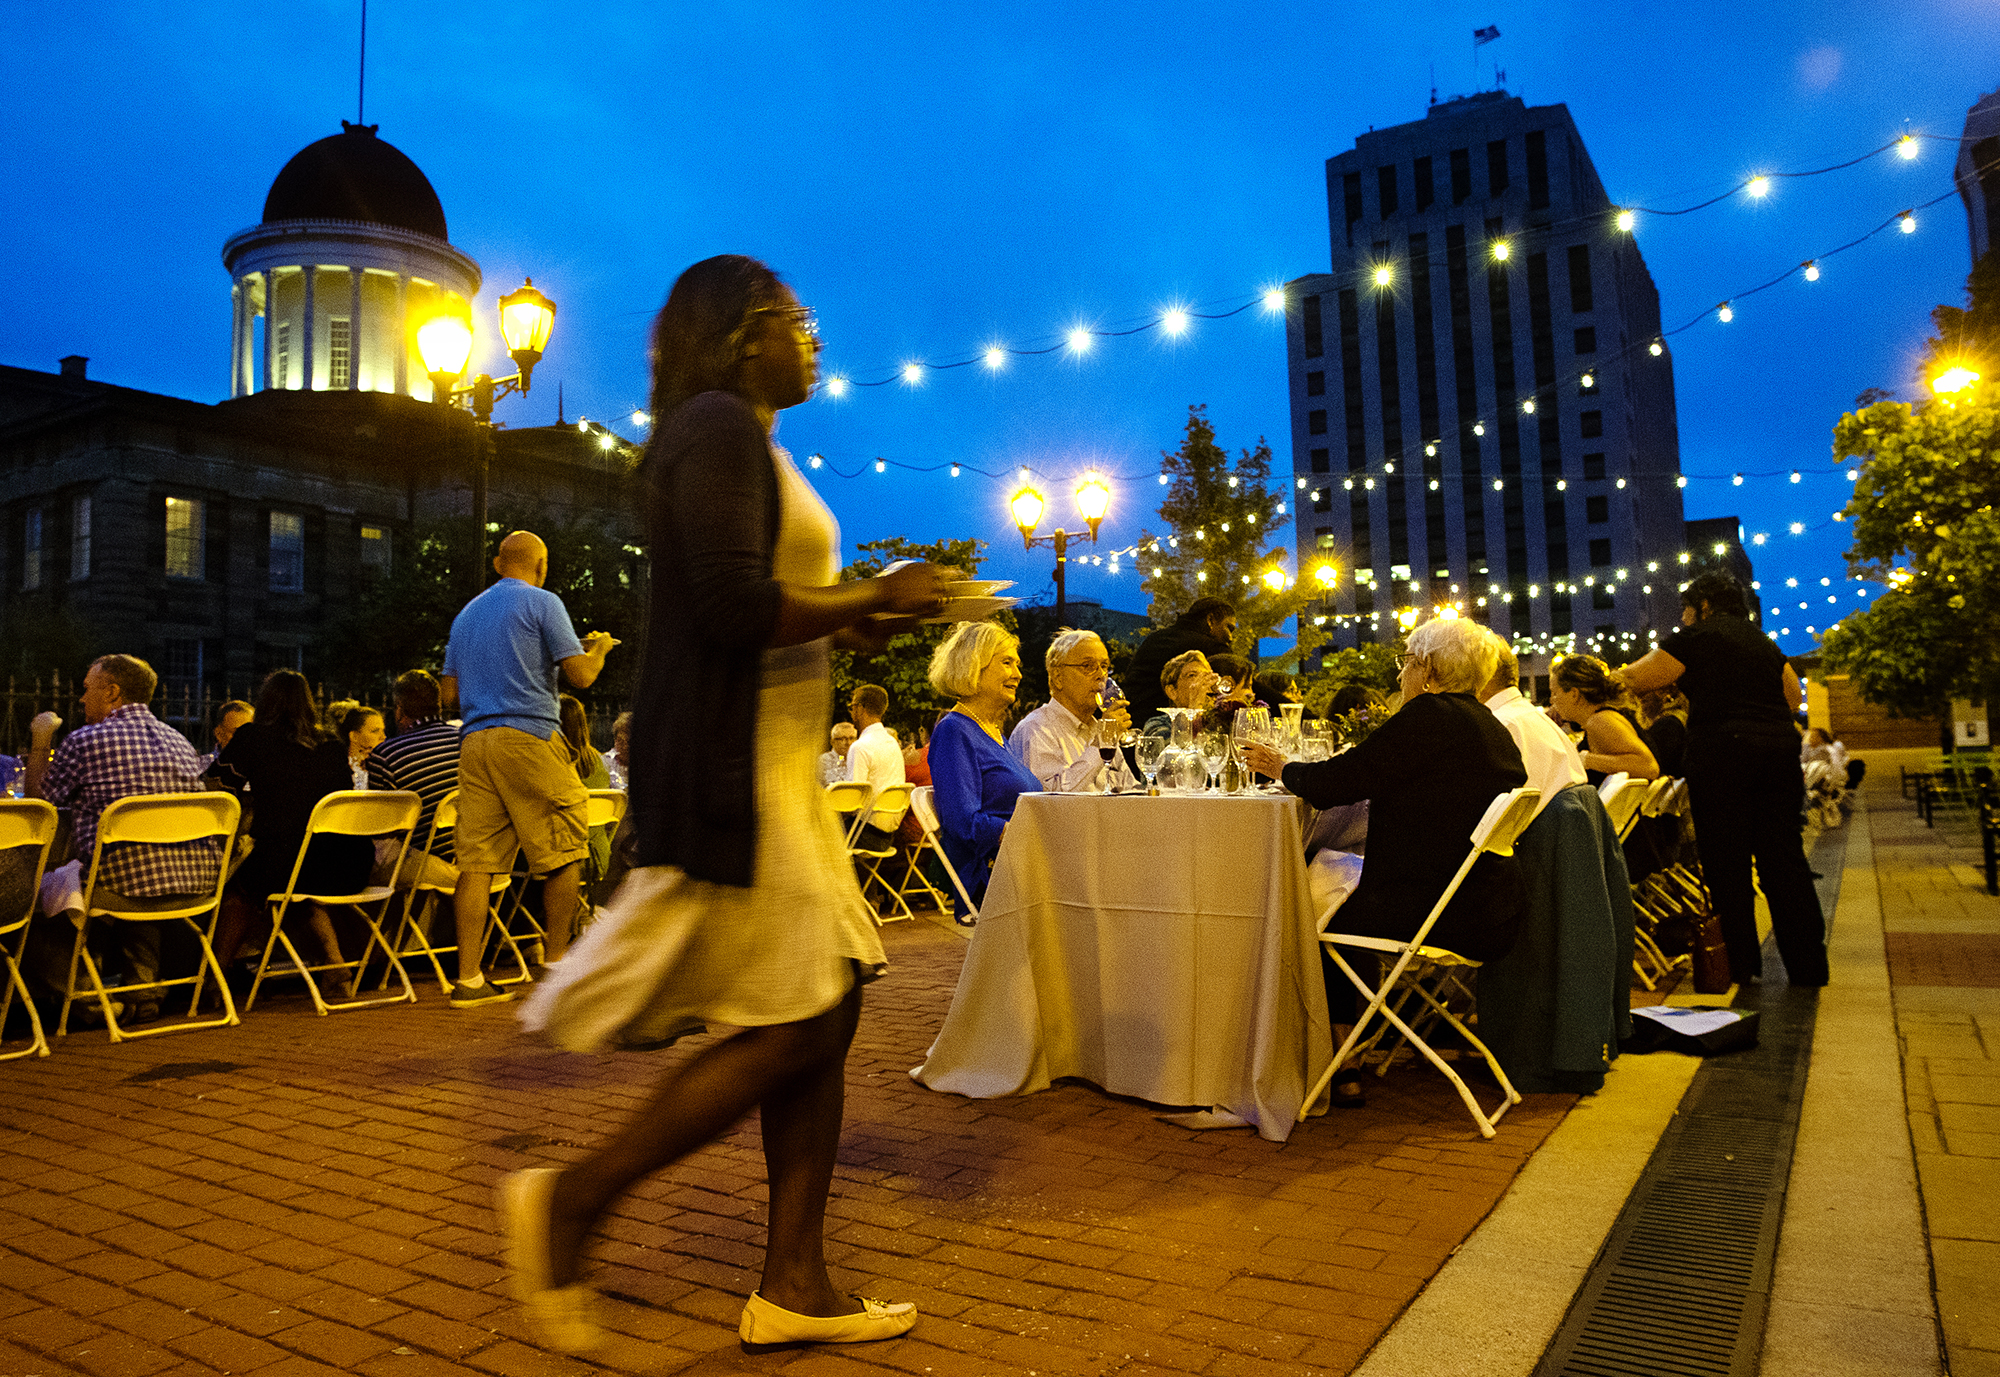 Diners gather under the fading evening light during the 3rd Annual Friends of the Market Street Dinner on the Old State Capitol Plaza Thursday, Sept. 6, 2018. Two hundred seats were available for the four course meal created with food from vendors of the Downtown Farmer's prepared by local chefs. [Ted Schurter/The State Journal-Register]